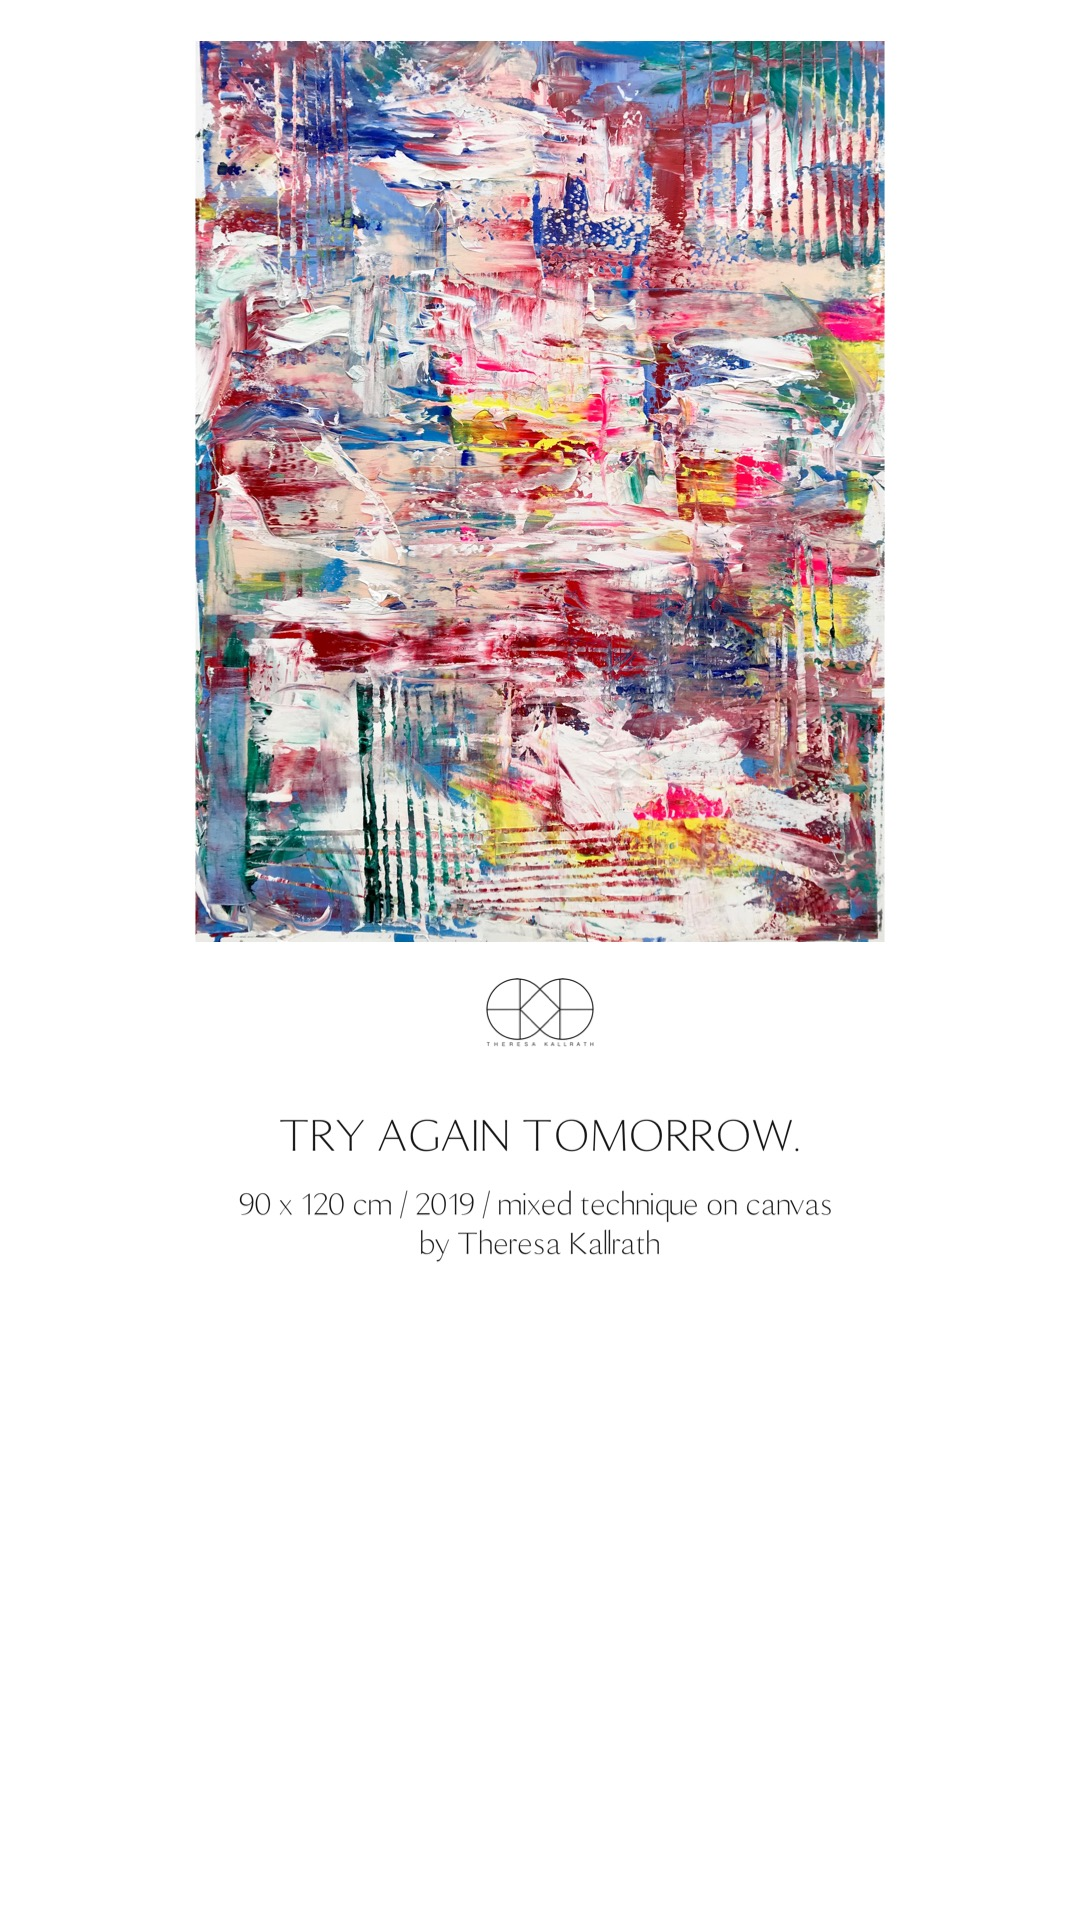 Theresa Kallrath_try again tomorrow_2019